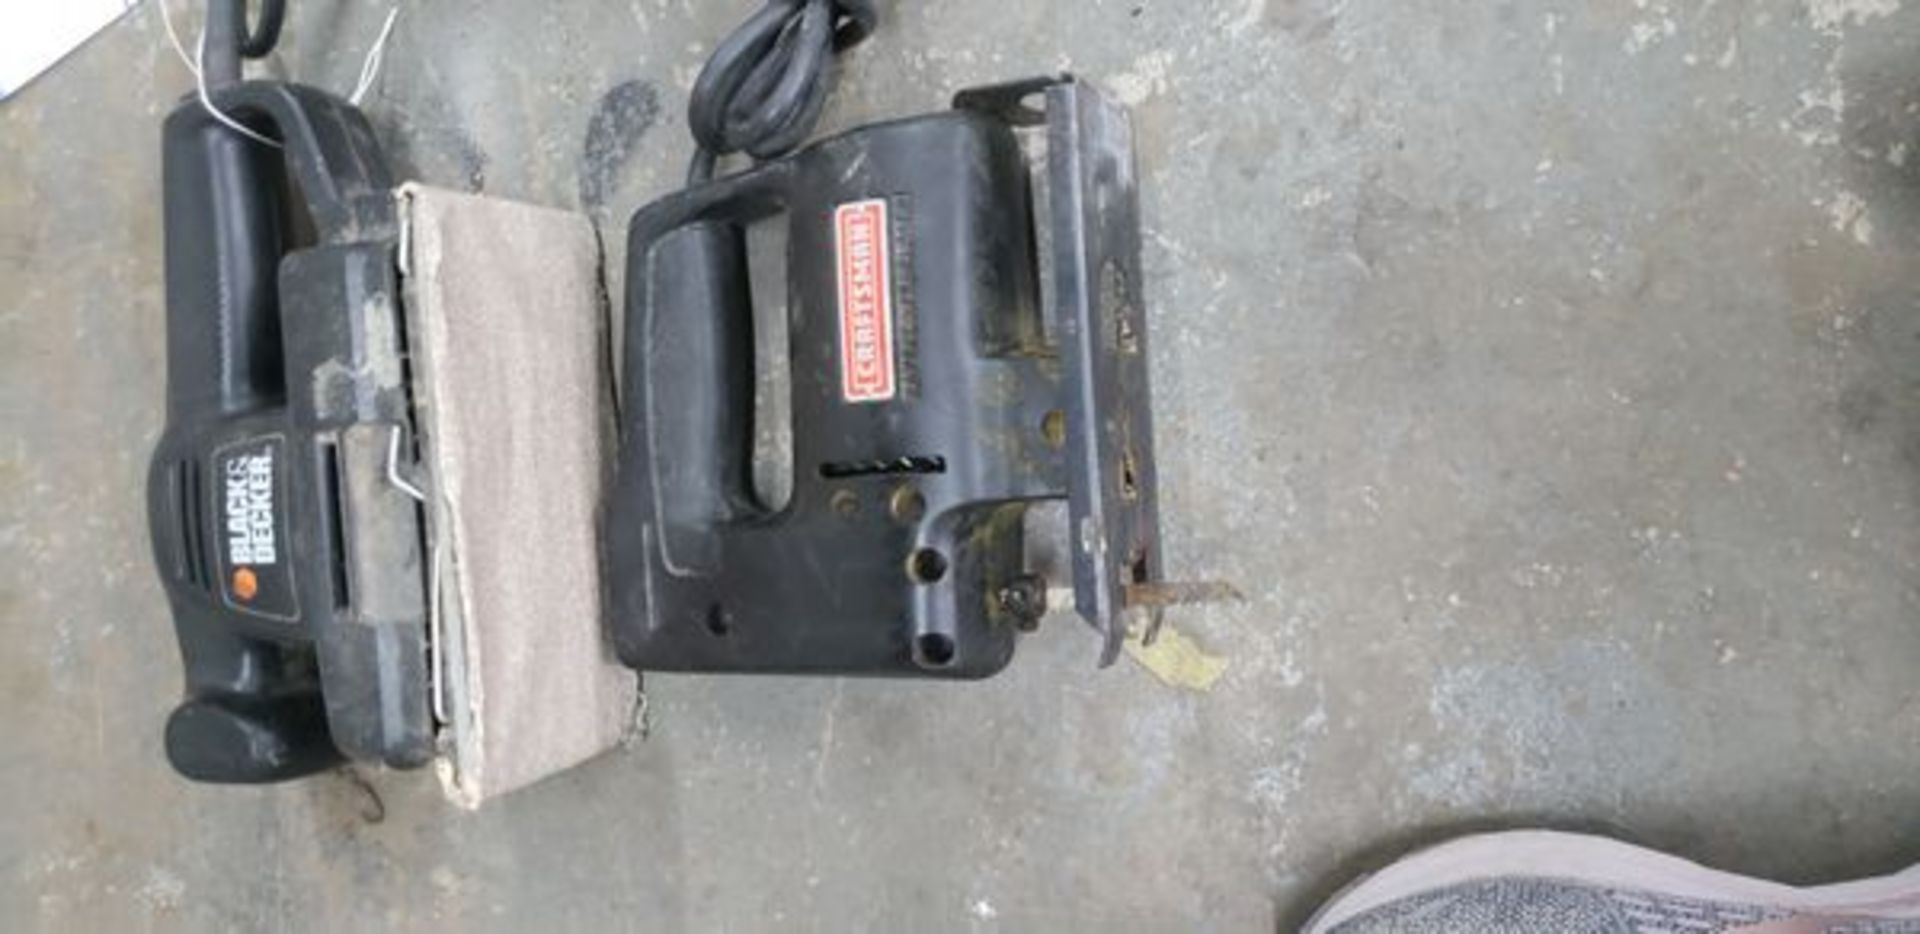 ELECTRIC SANDER AND JIG SAW - Image 2 of 2